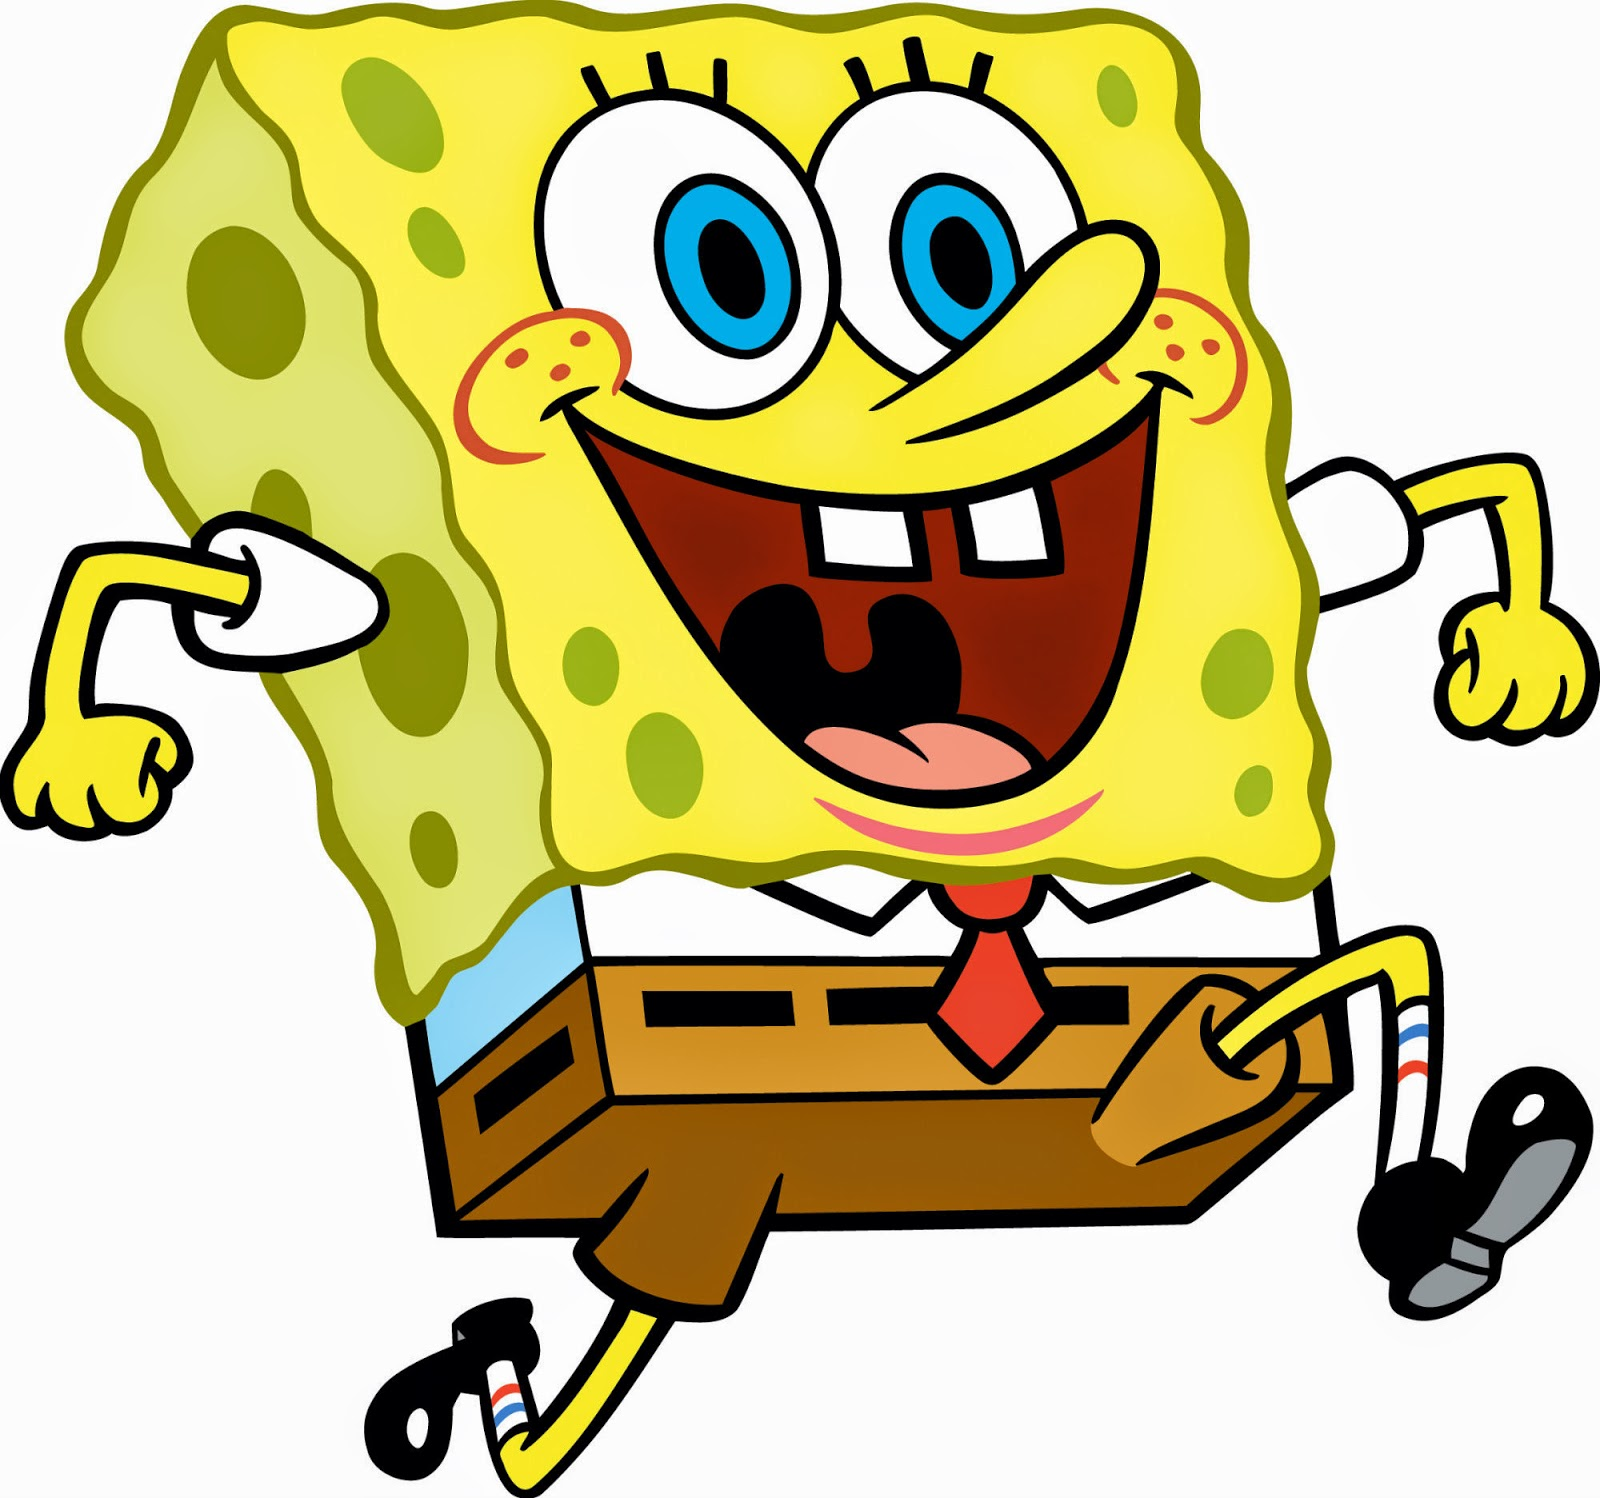 Free Download Kumpulan Gambar Spongebob Squarepants Gambar Lucu Terbaru Cartoon 1600x1498 For Your Desktop Mobile Tablet Explore 50 Gambar Spongebob Squarepants Wallpaper Live Spongebob Wallpapers Spongebob Hd Wallpaper Spongebob